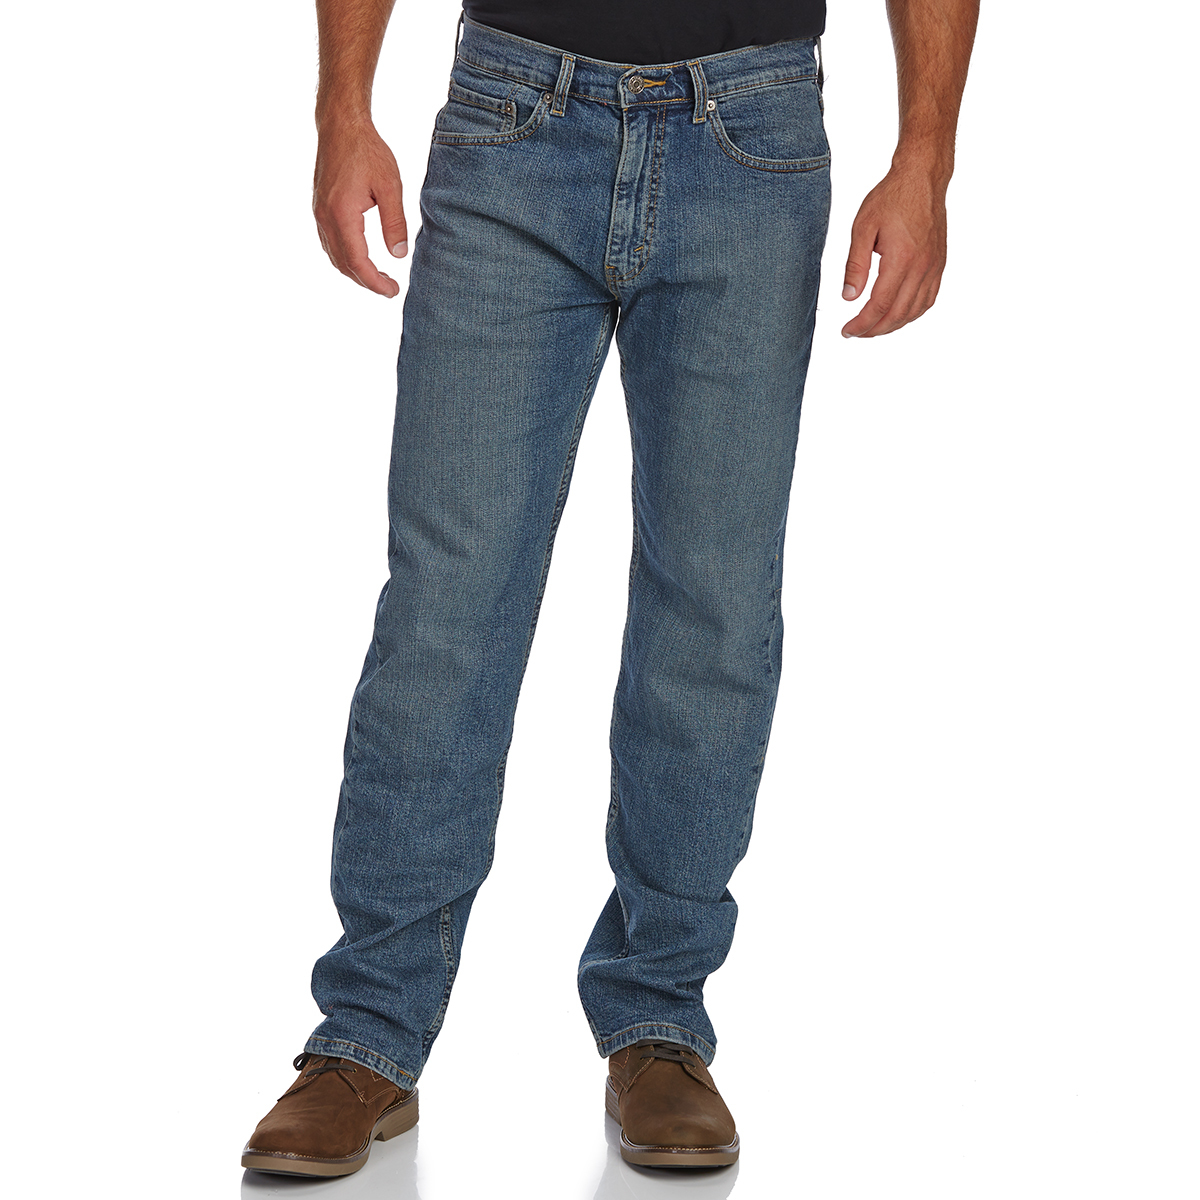 Signature By Levi Strauss & Co. Gold Label Men's Regular Fit Jeans - Discontinued Style - Blue, 40/30